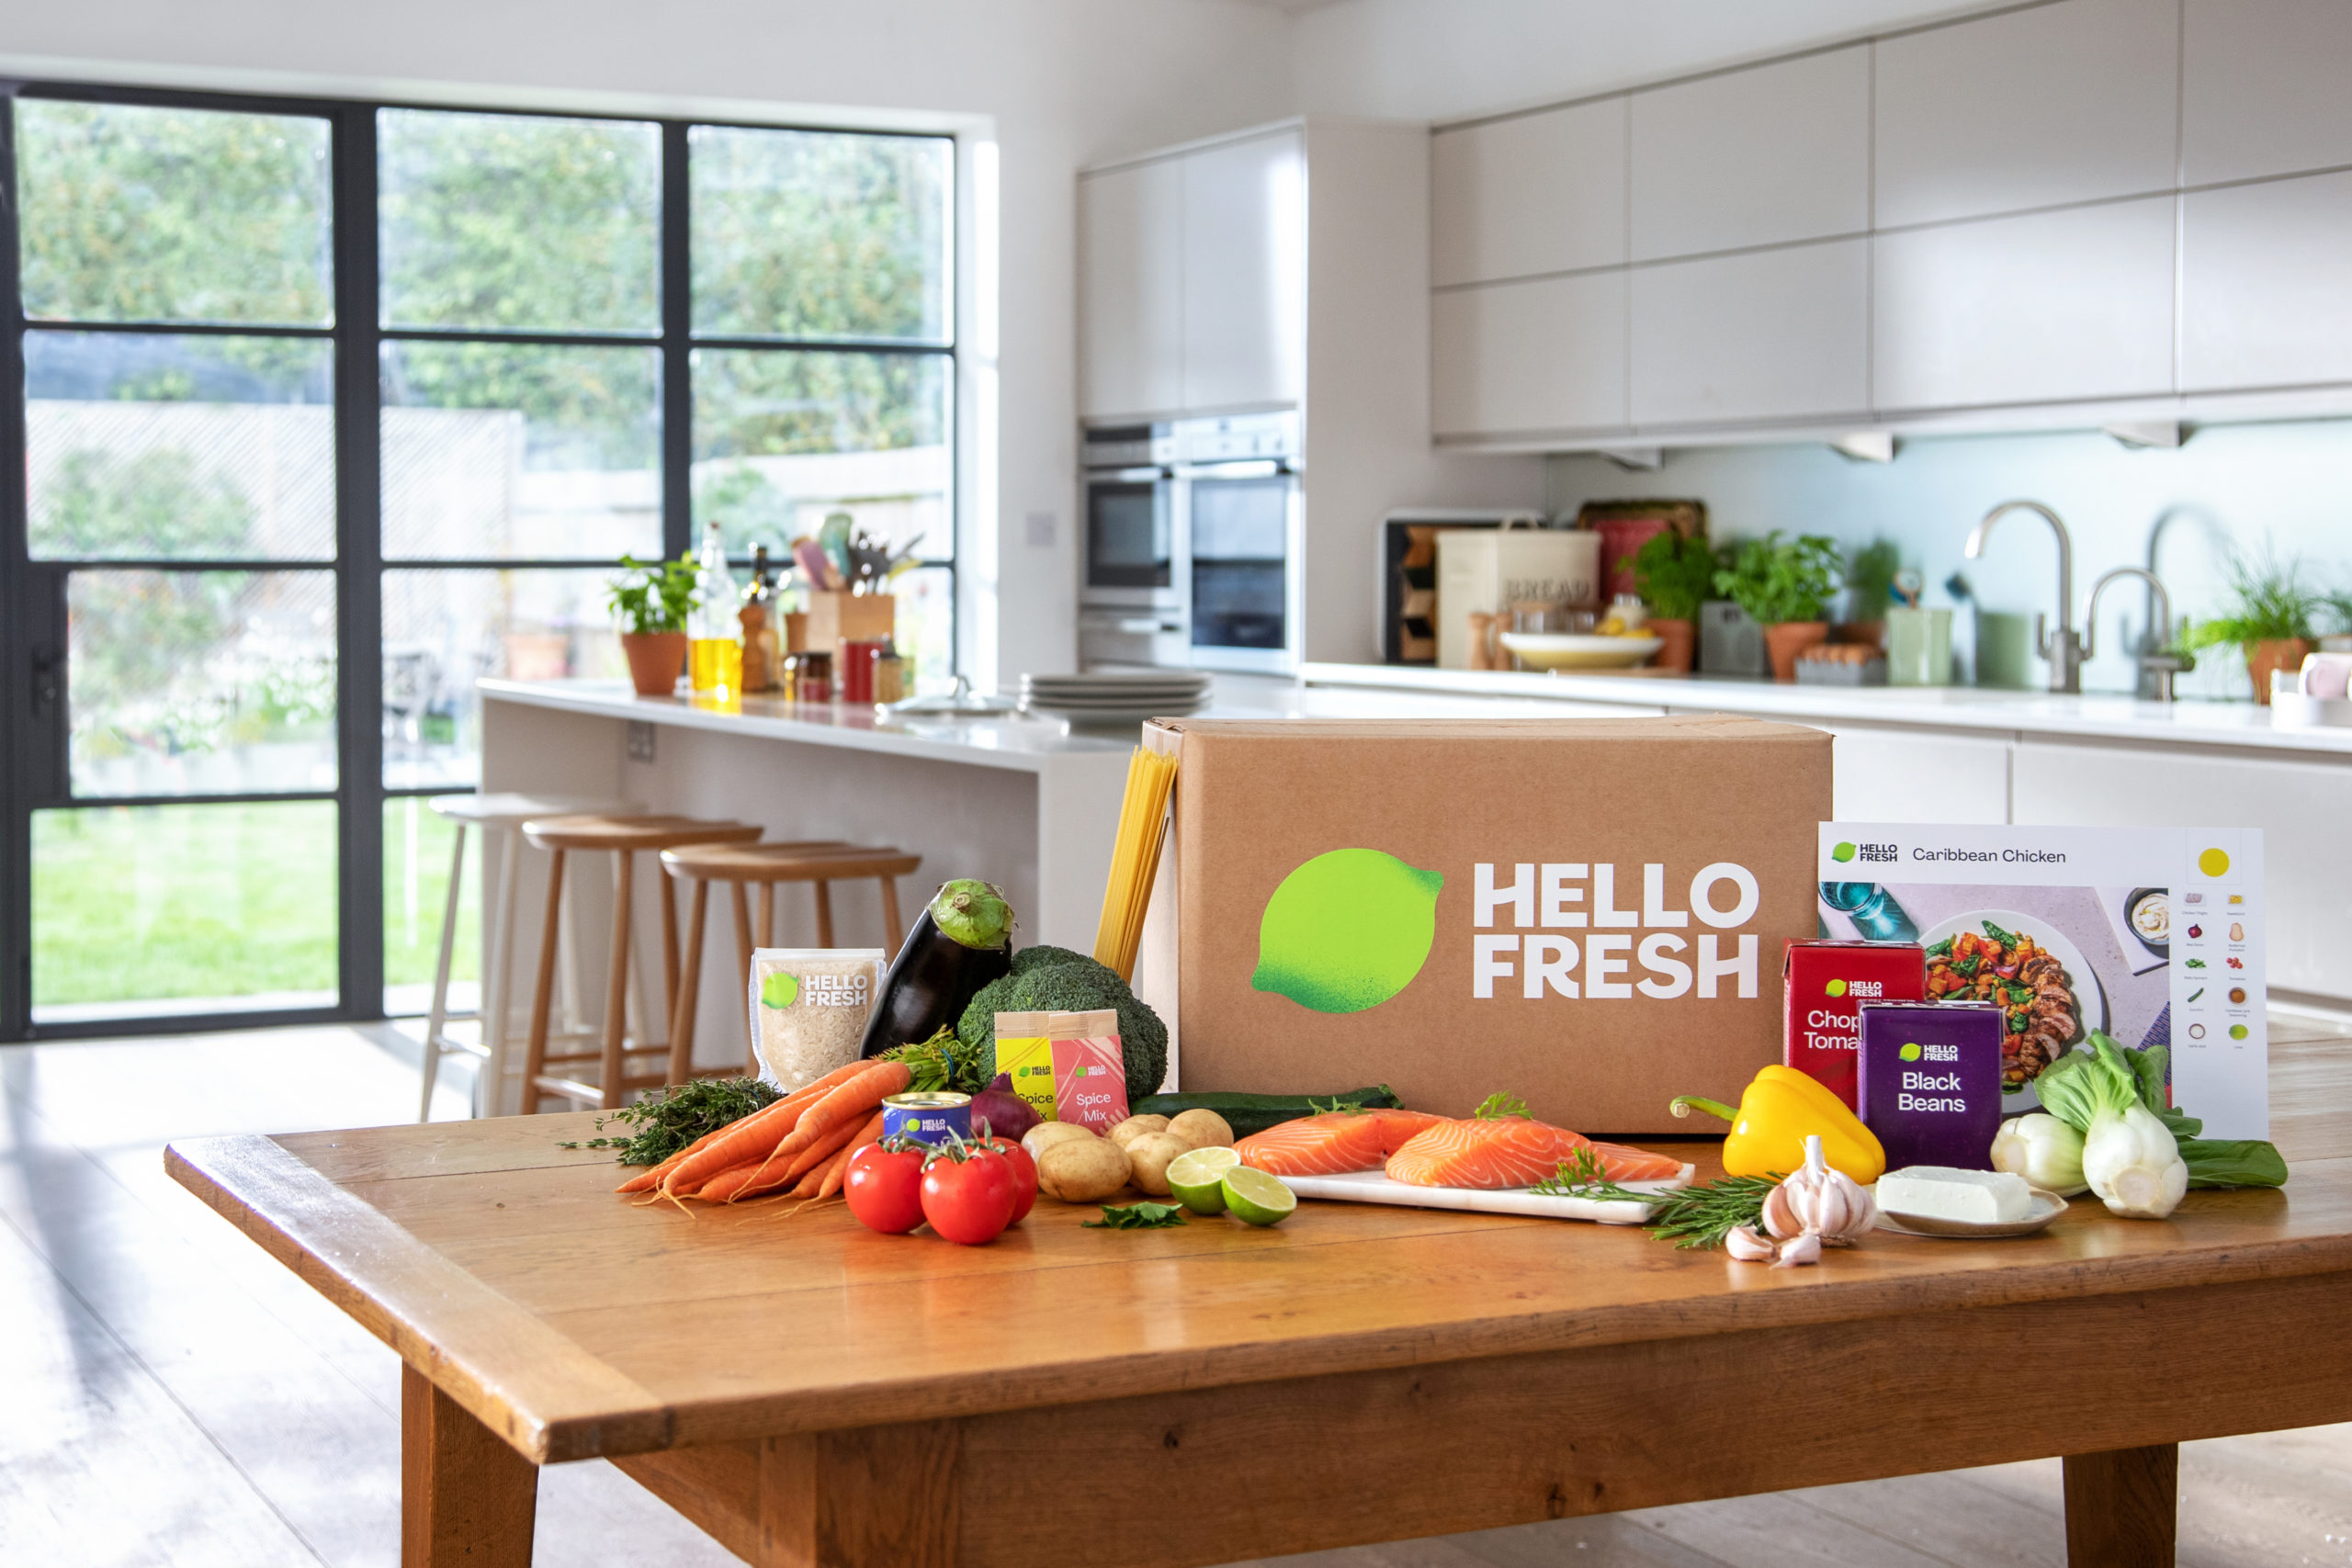 Hellofresh: Kohortenanalyse